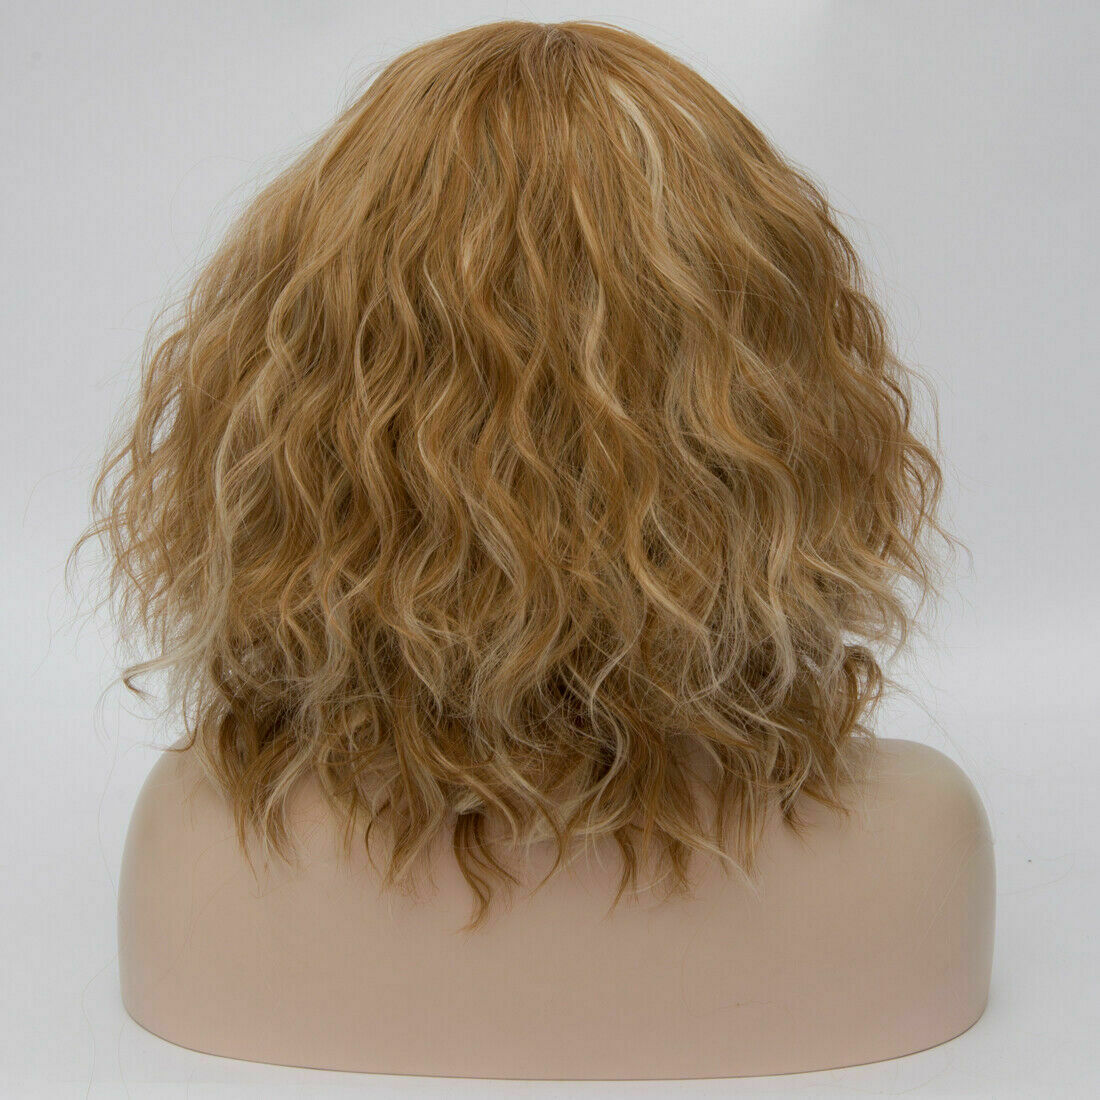 Lolita-Women-039-s-Short-Curly-Anime-Synthetic-Hair-Heat-Resistant-Cosplay-Party-Wig miniature 90